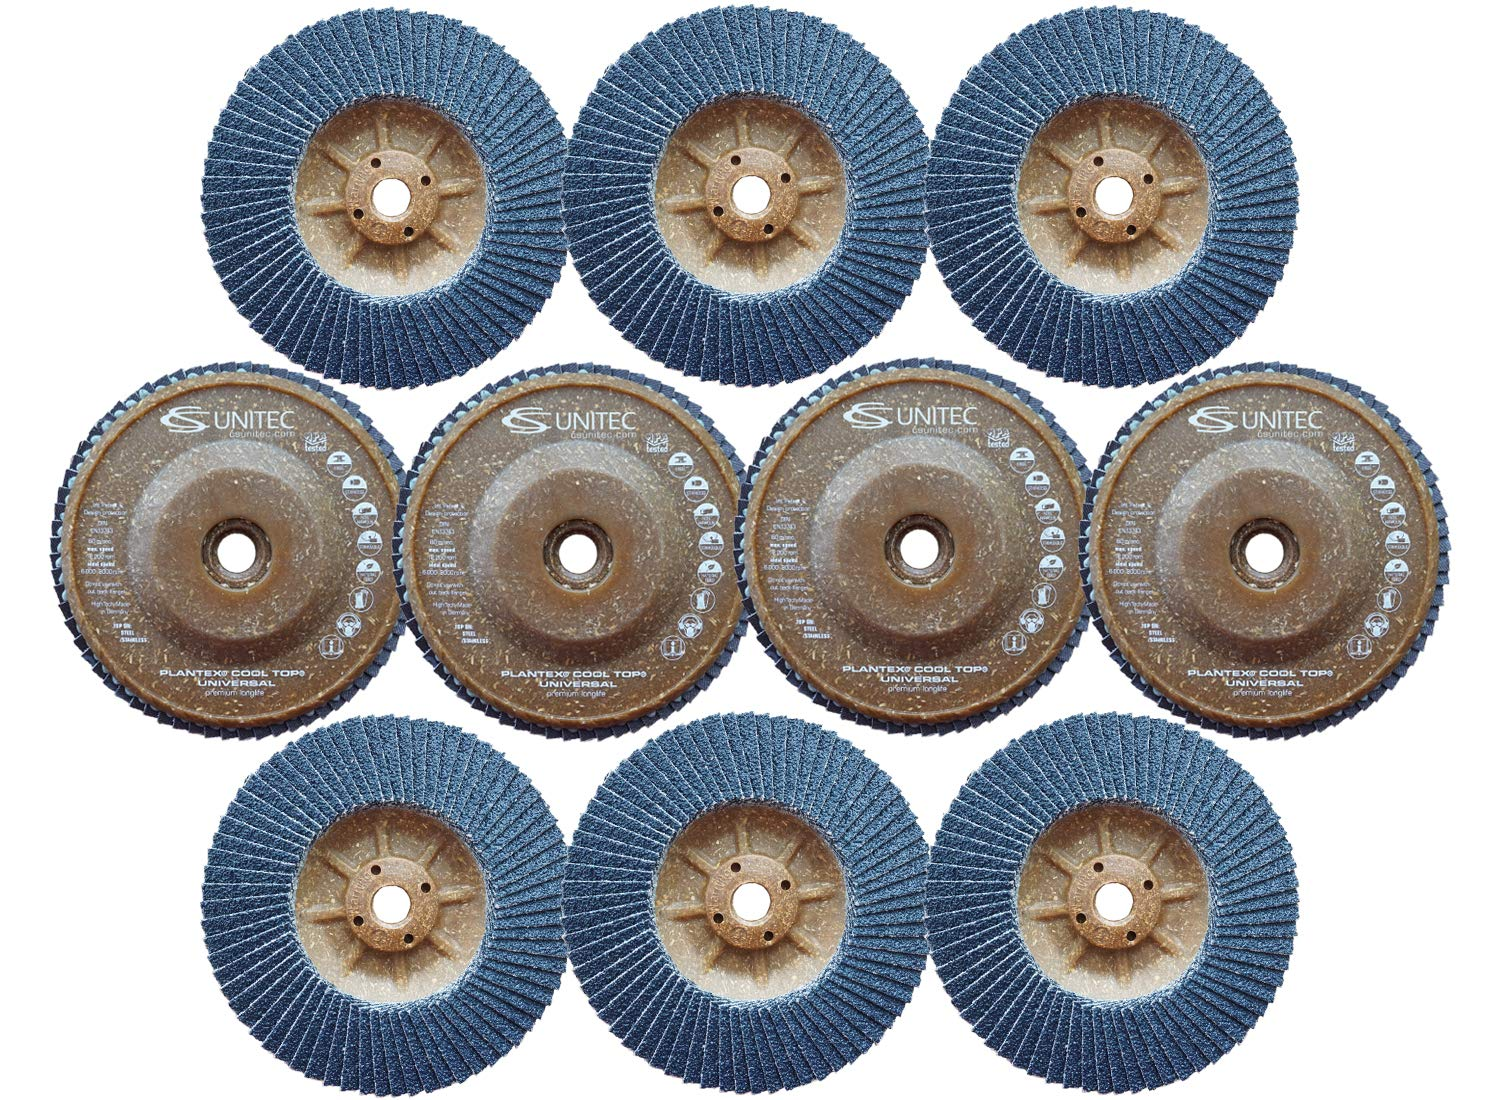 CS Unitec PLANTEX Universal Trimmable Flap Discs with Hemp Backing - 120 Grit, 5 in. 5/8-11 Arbor, [Pack of 10] - Made in Germany (93579) - for Steel & Stainless Steel Metal Deburring/Finishing